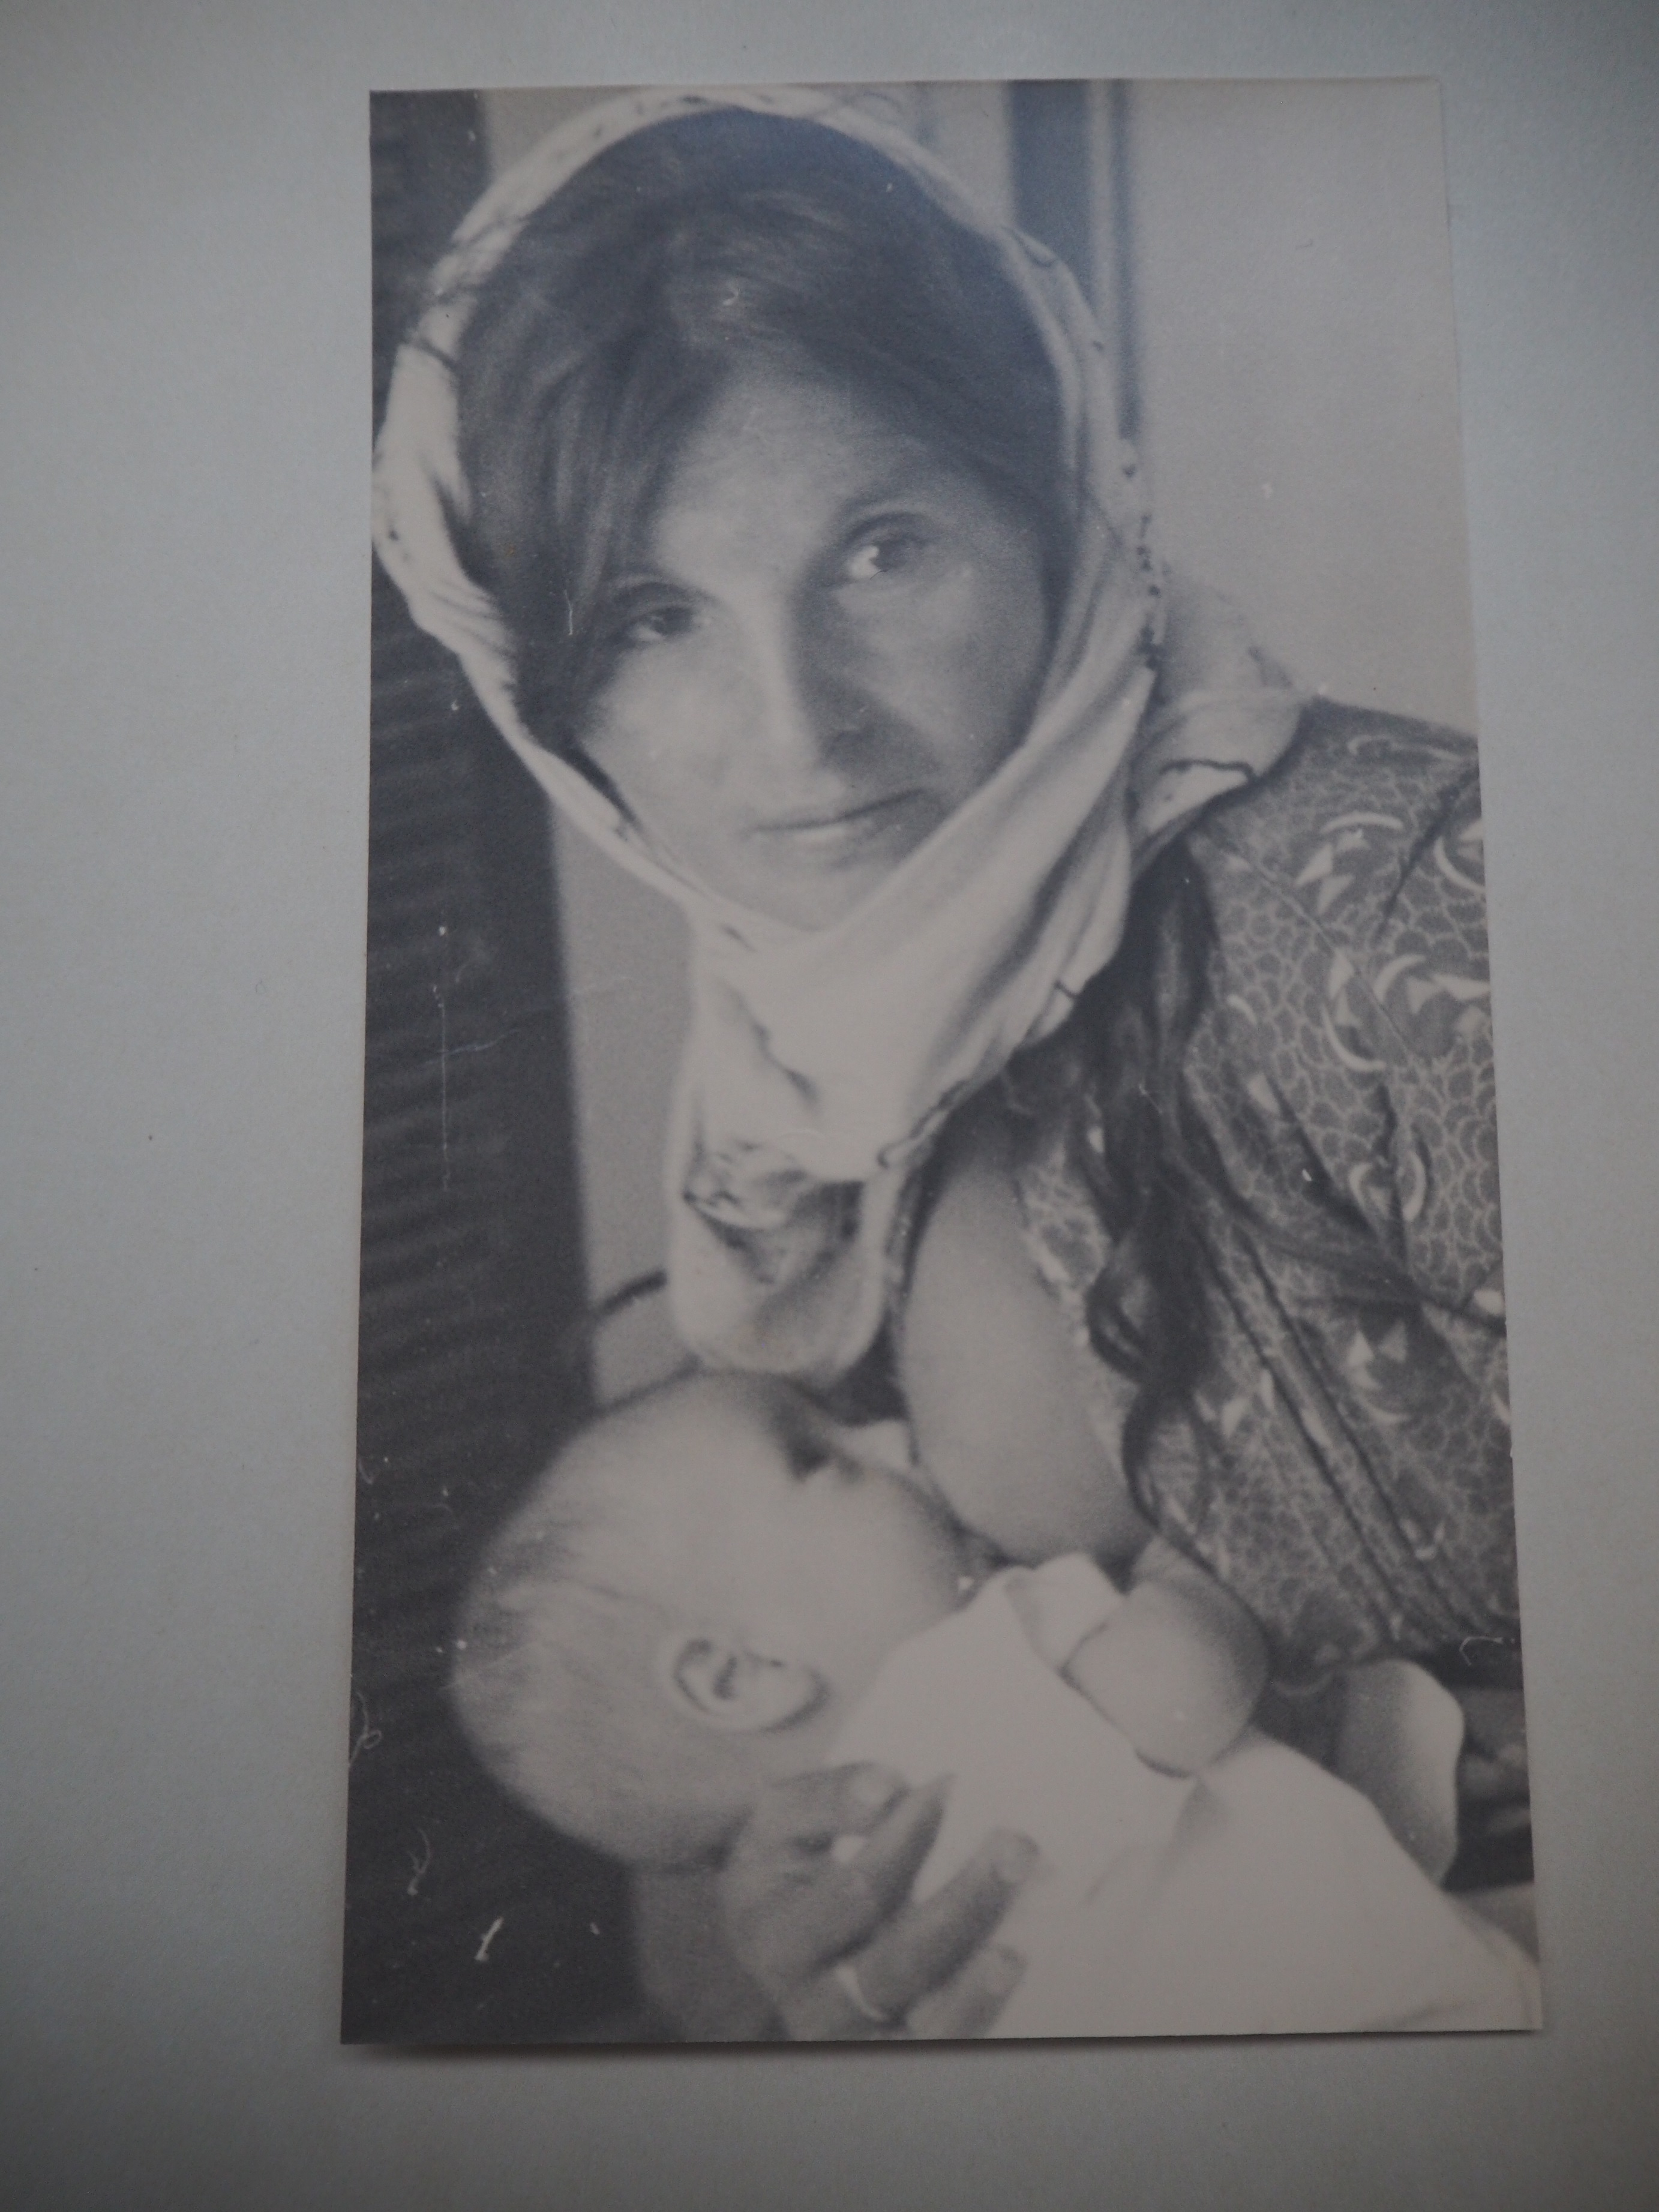 Eckstein Albums breastfeeding woman and infant